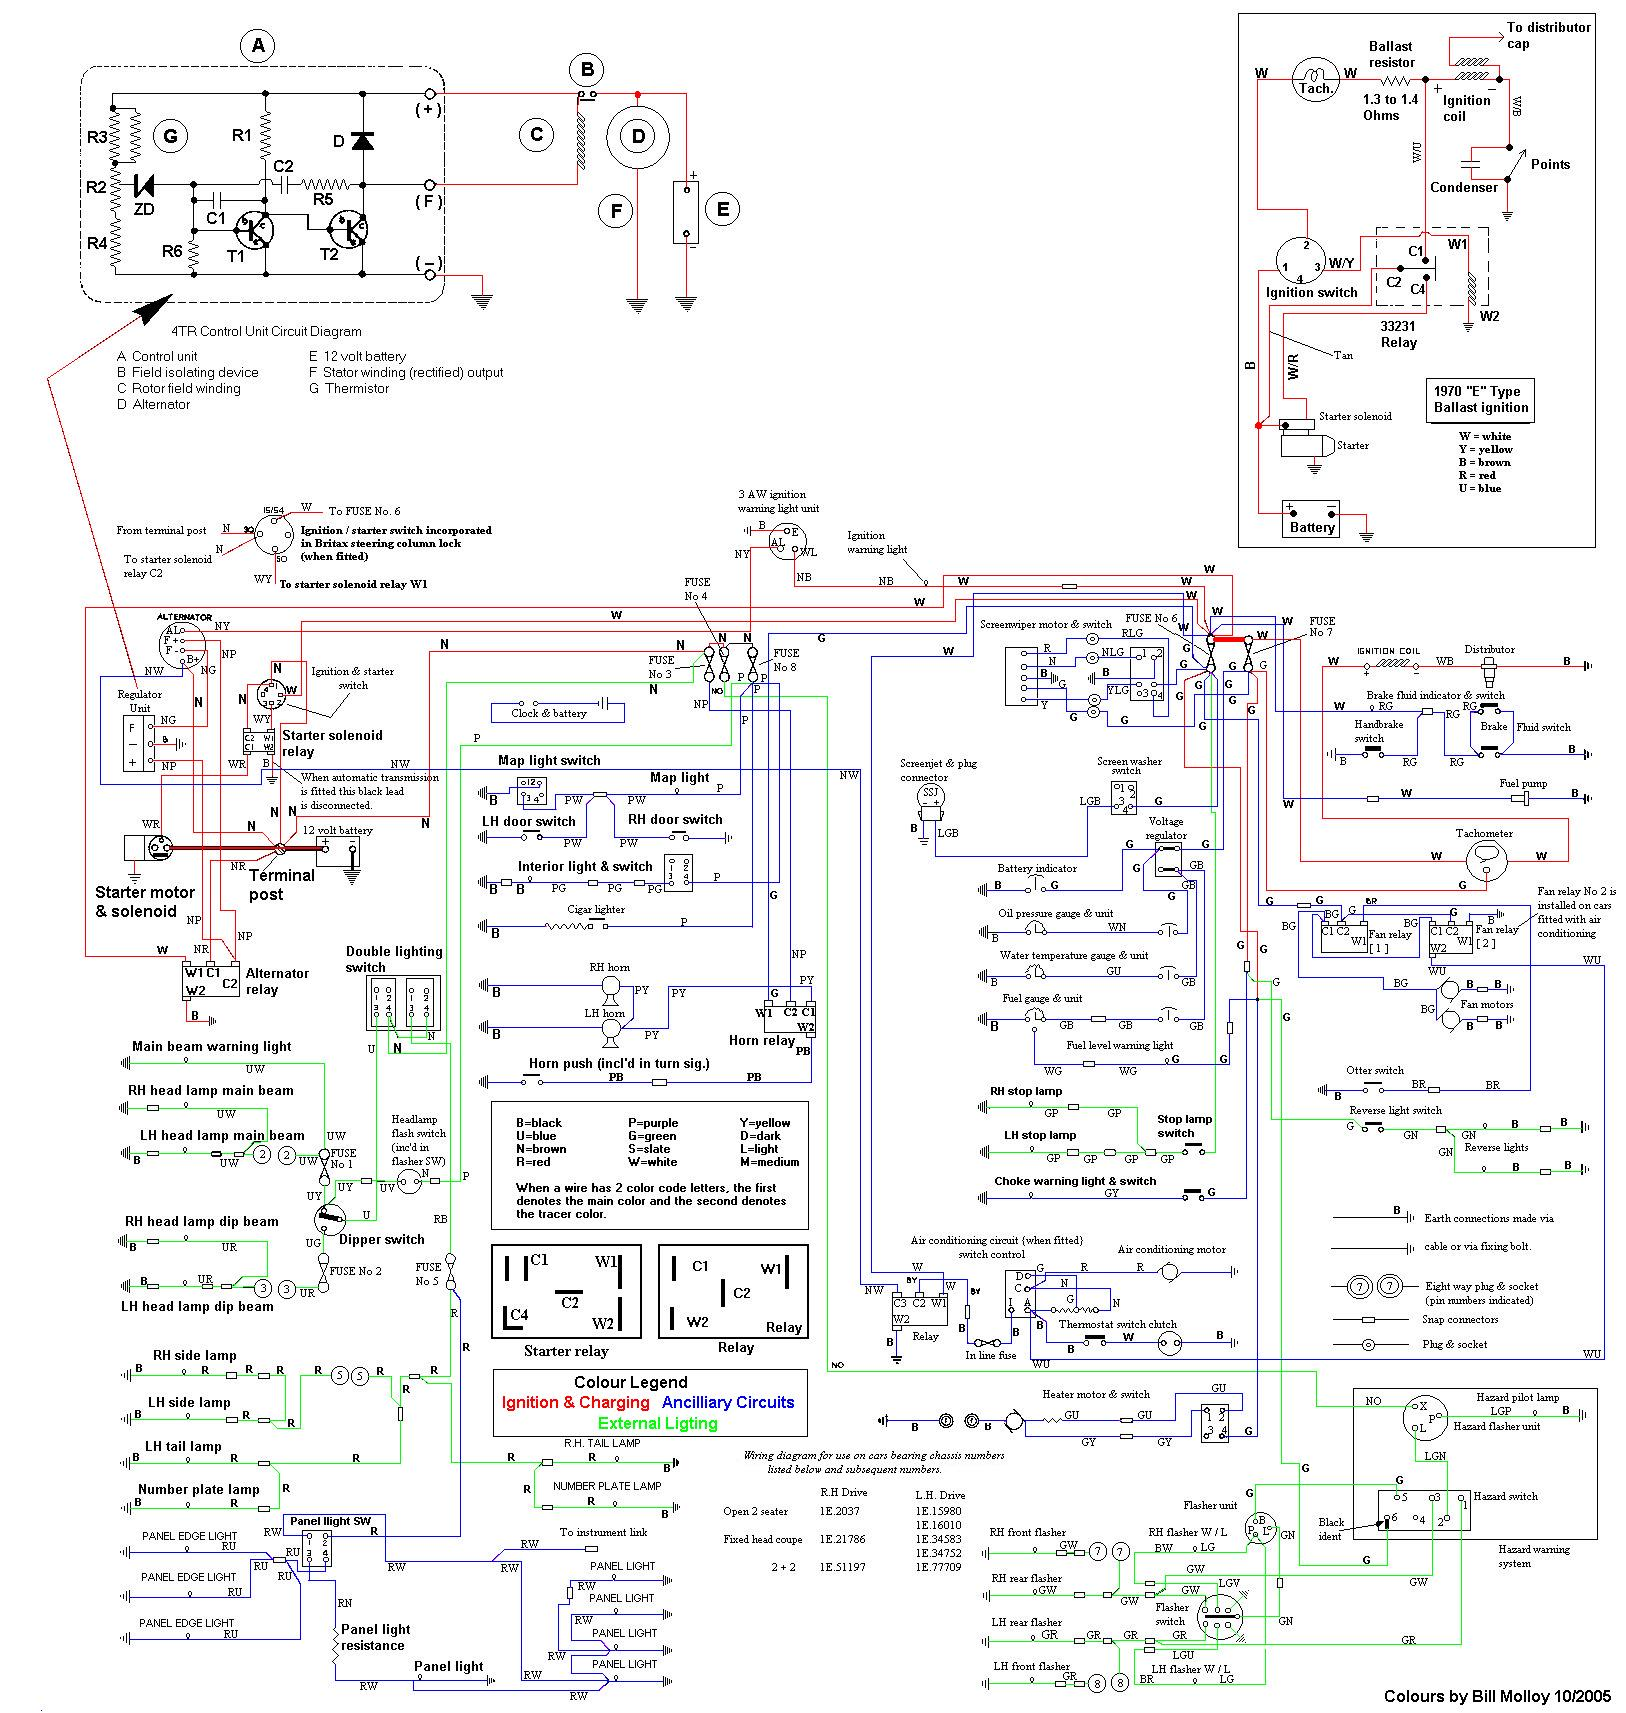 Jaguar Mk2 Wiring Diagram For Free Xk150 Also As Well Further Besides Maxresdefault Likewise 35866 Full Together With